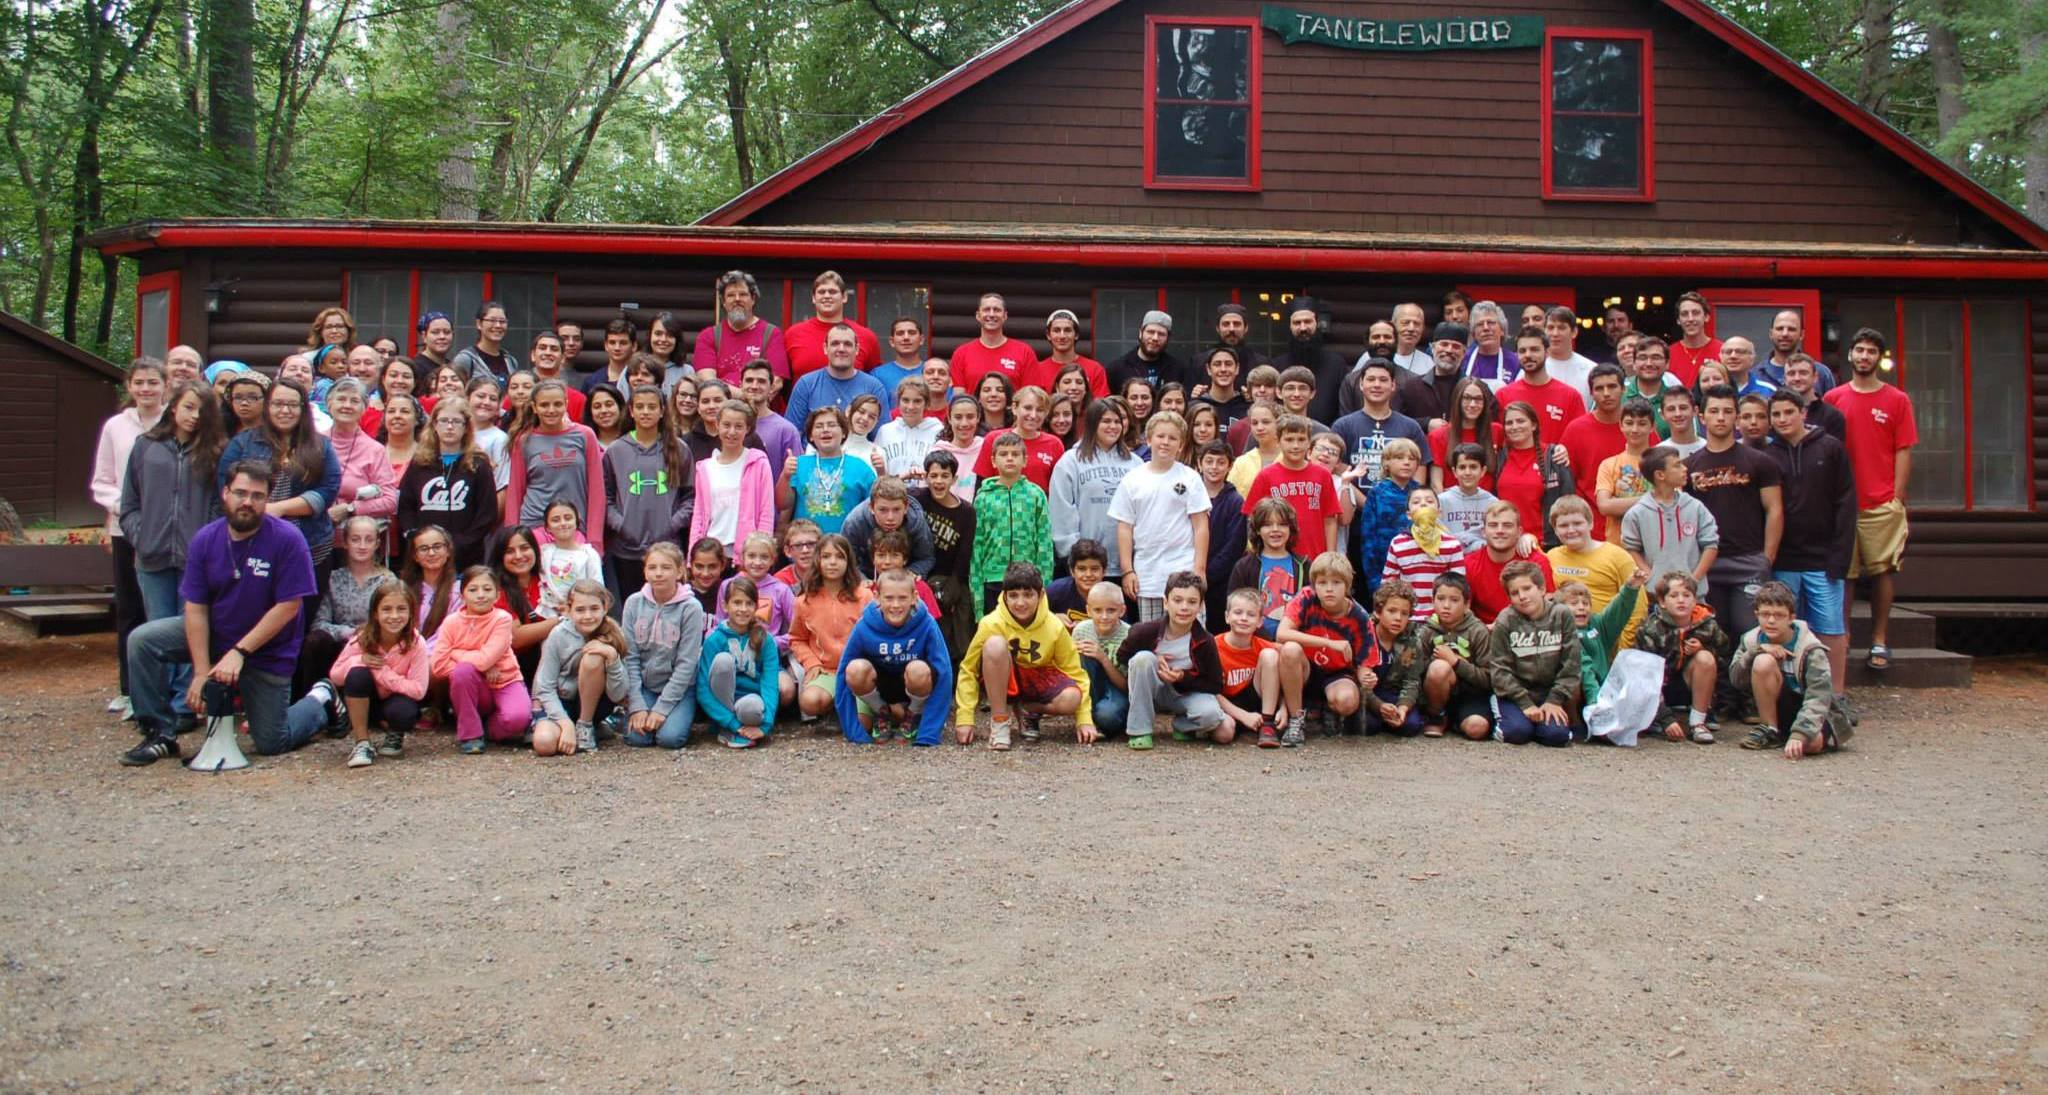 St Xenia Camp Registration 2015